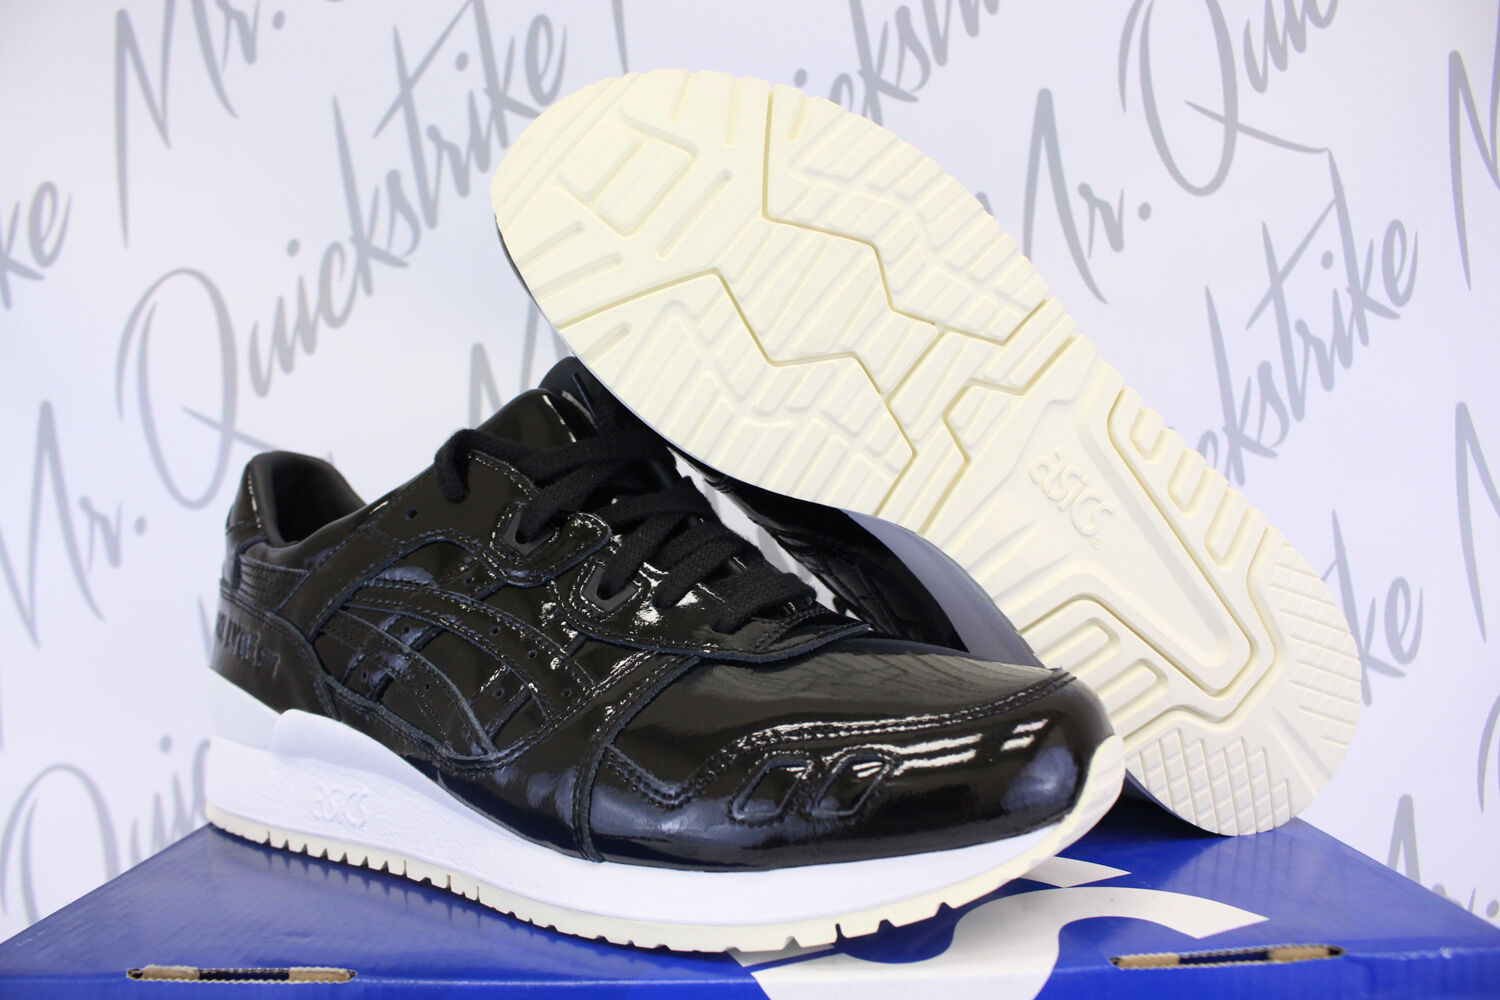 ASICS GEL LYTE LEATHER III 3 SZ 8.5 BLACK PATENT LEATHER LYTE H7H1L 9090 f493e0